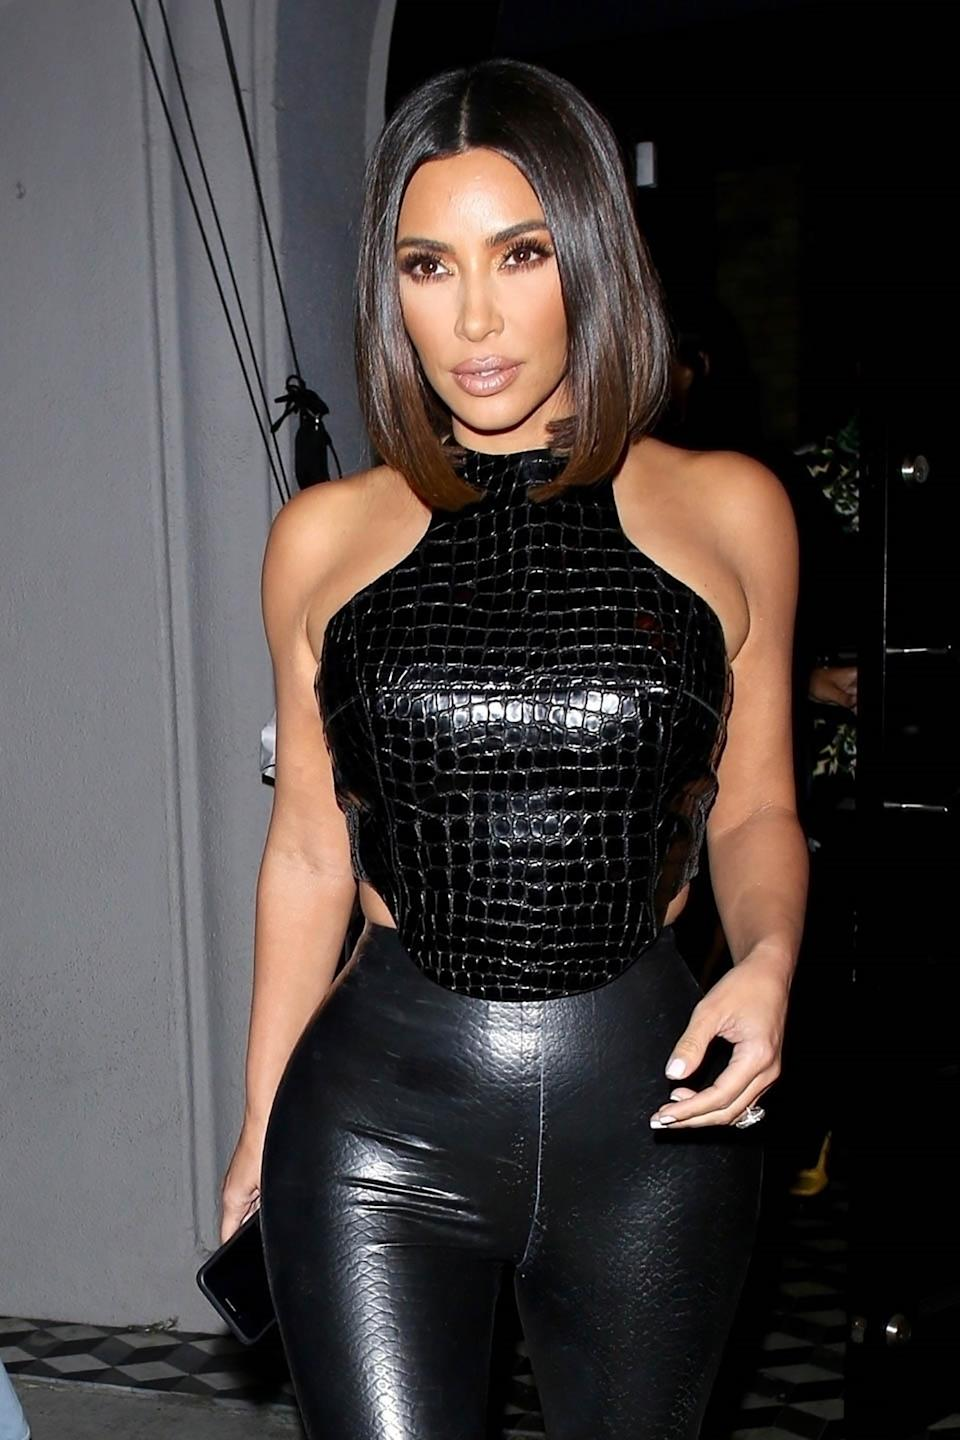 9 Short Haircut Ideas For Summer Inspired By Kim Kardashian West Rihanna And More